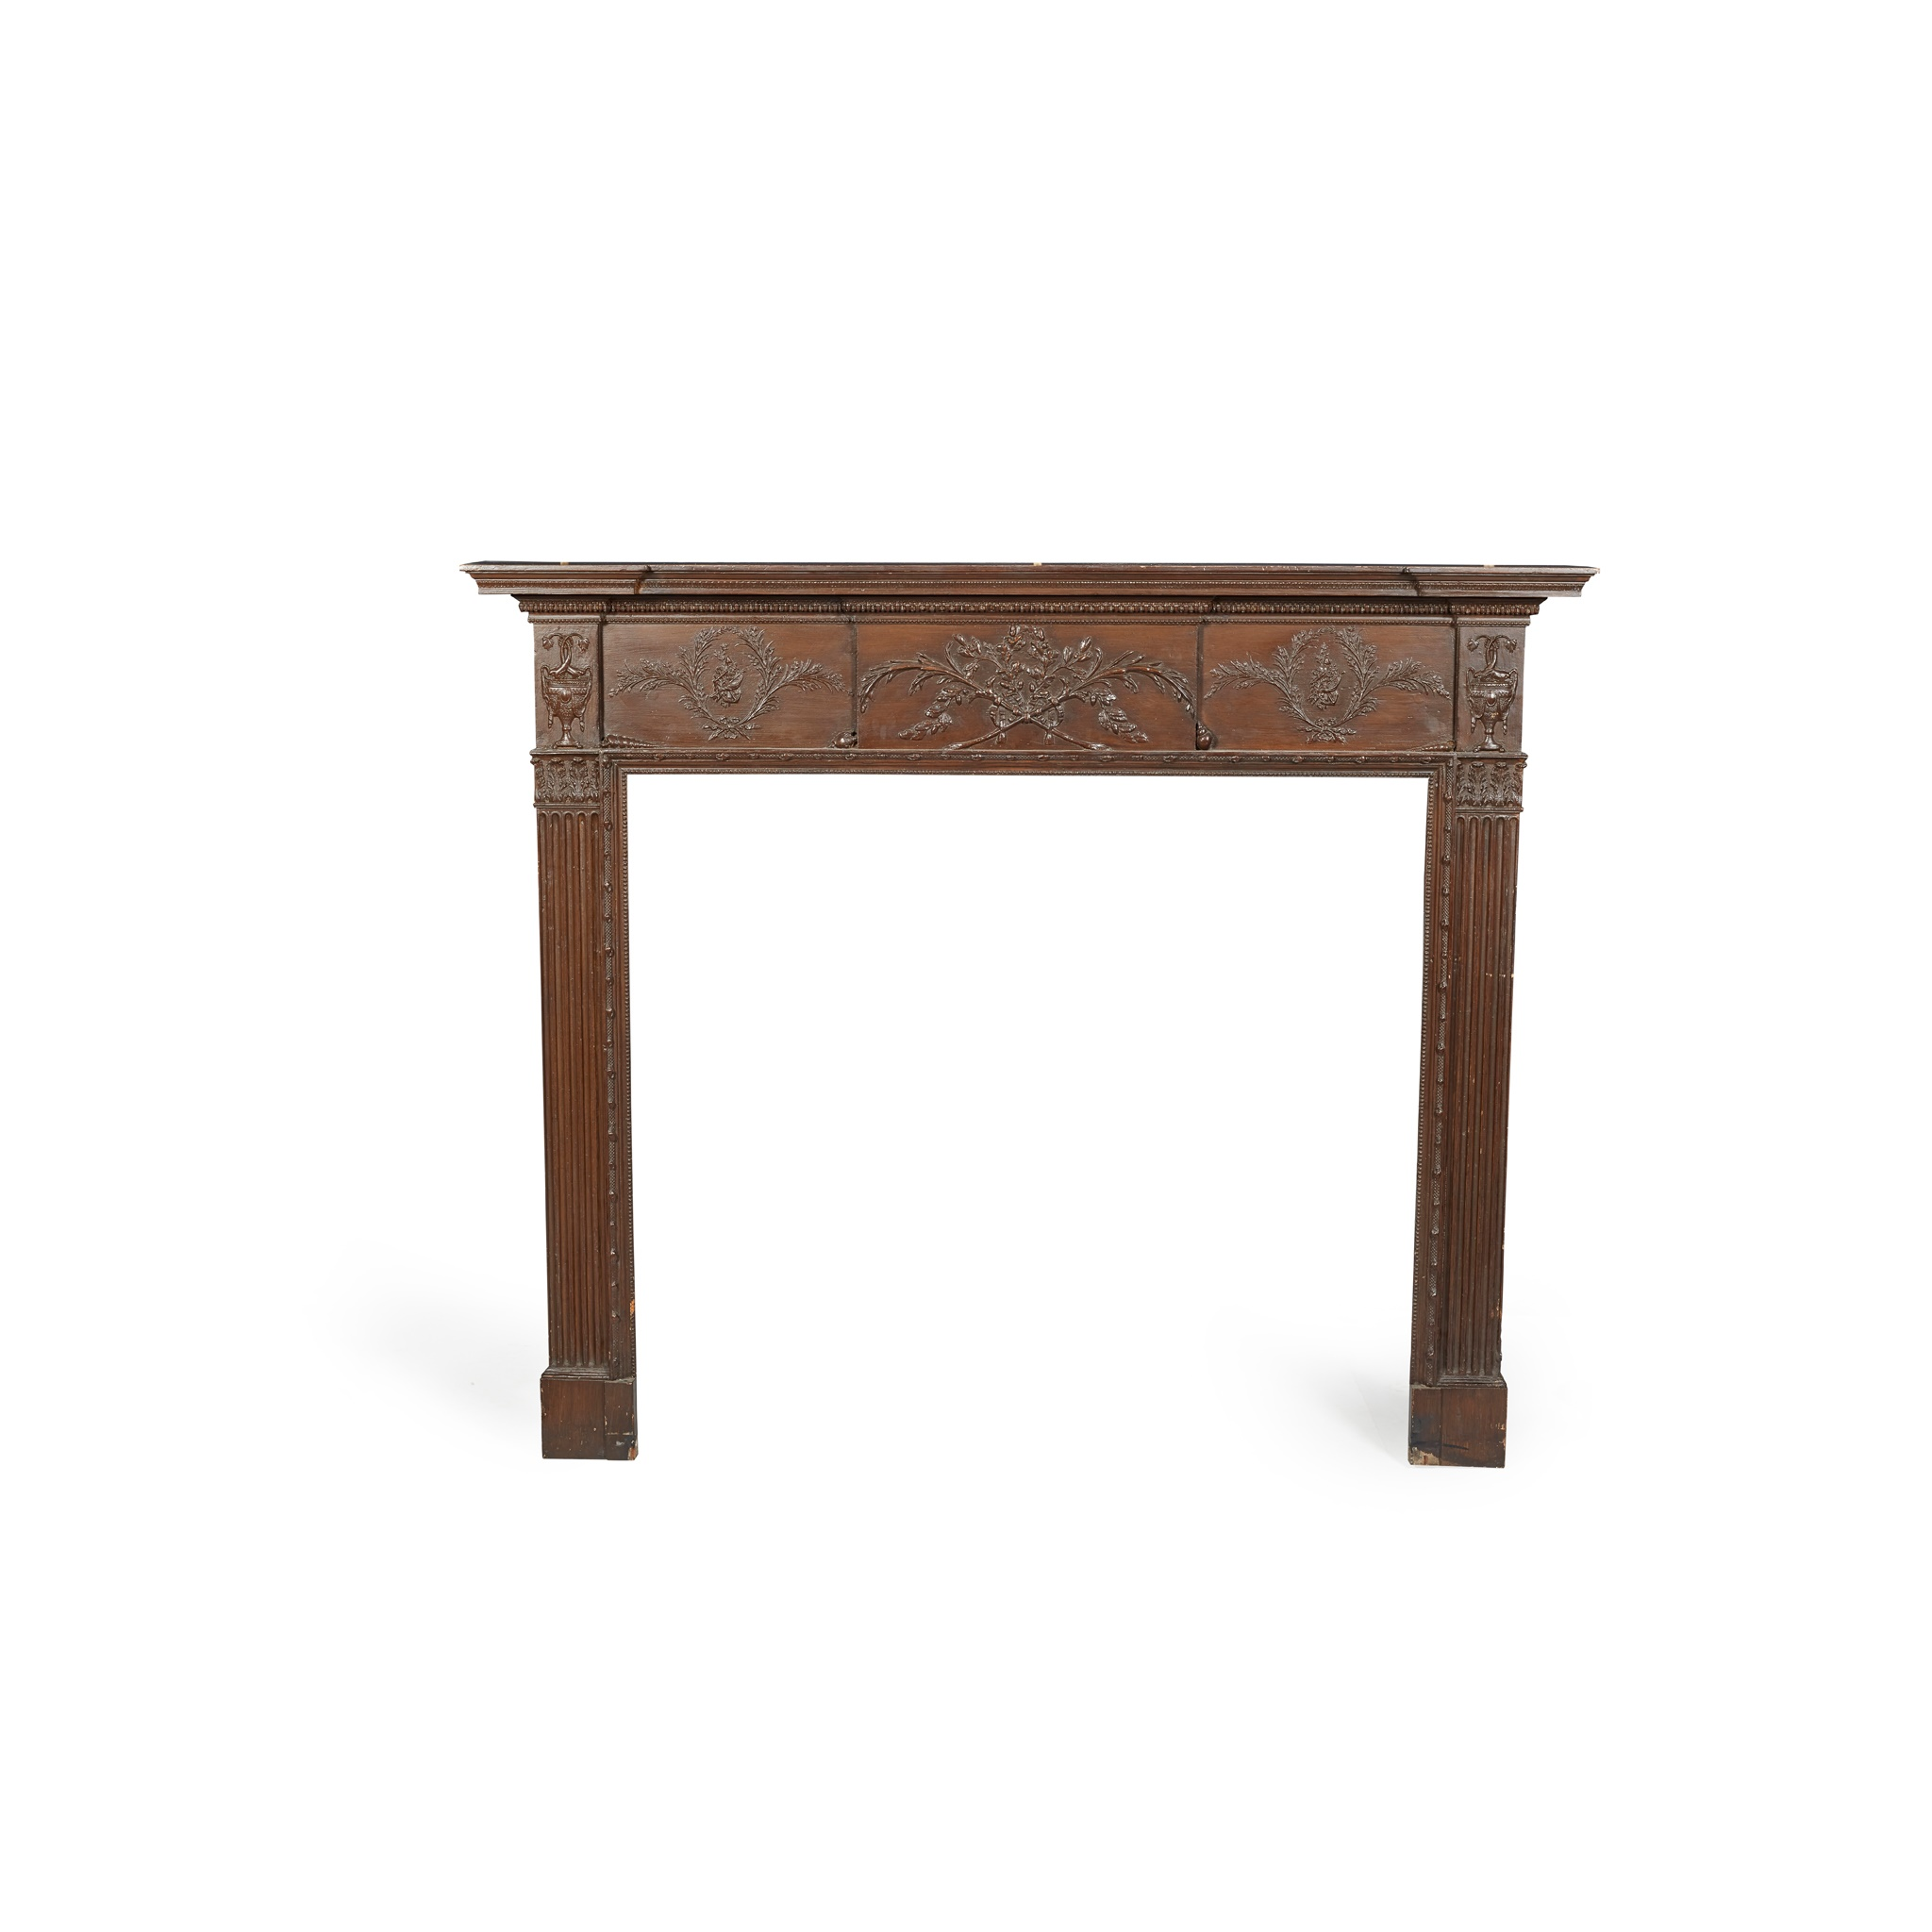 GEORGIAN PAINTED PINE AND GESSO FIRE SURROUND LATE 18TH/ EARLY 19TH CENTURY